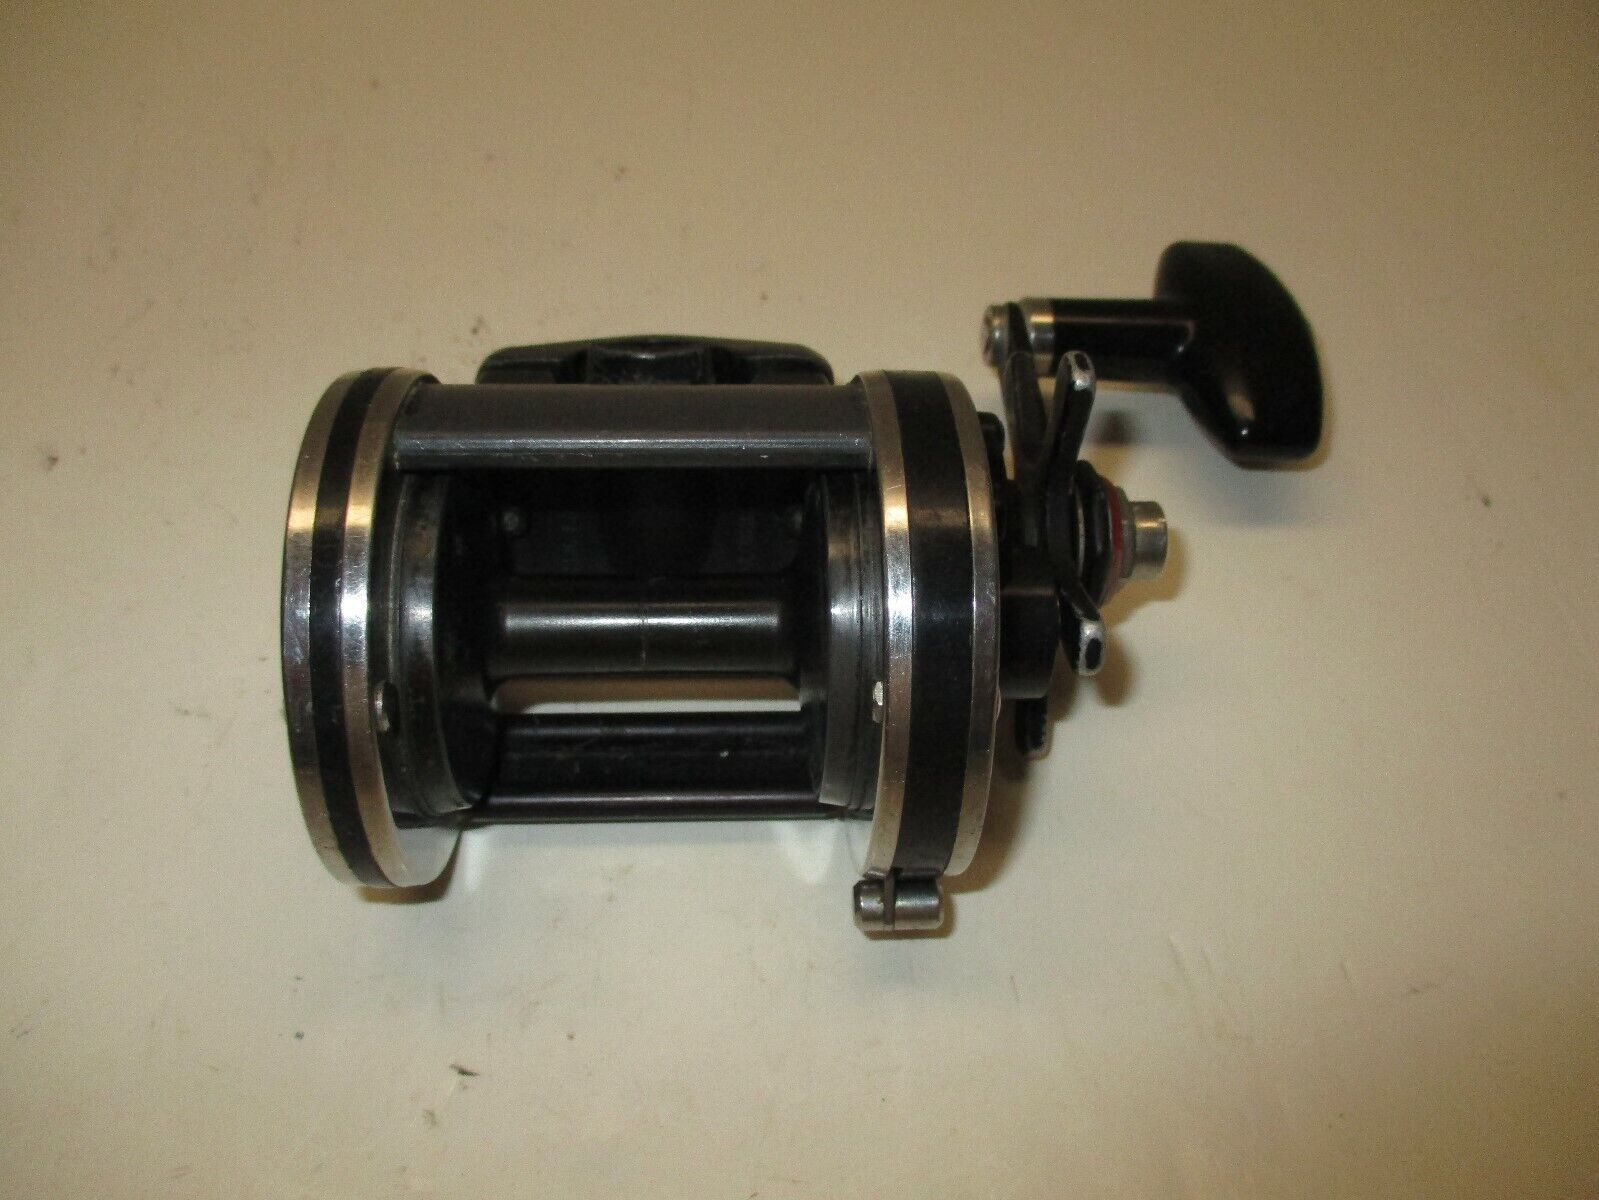 Nieuweell P229-F Conventional Reel made in USA GOOD CONDITION